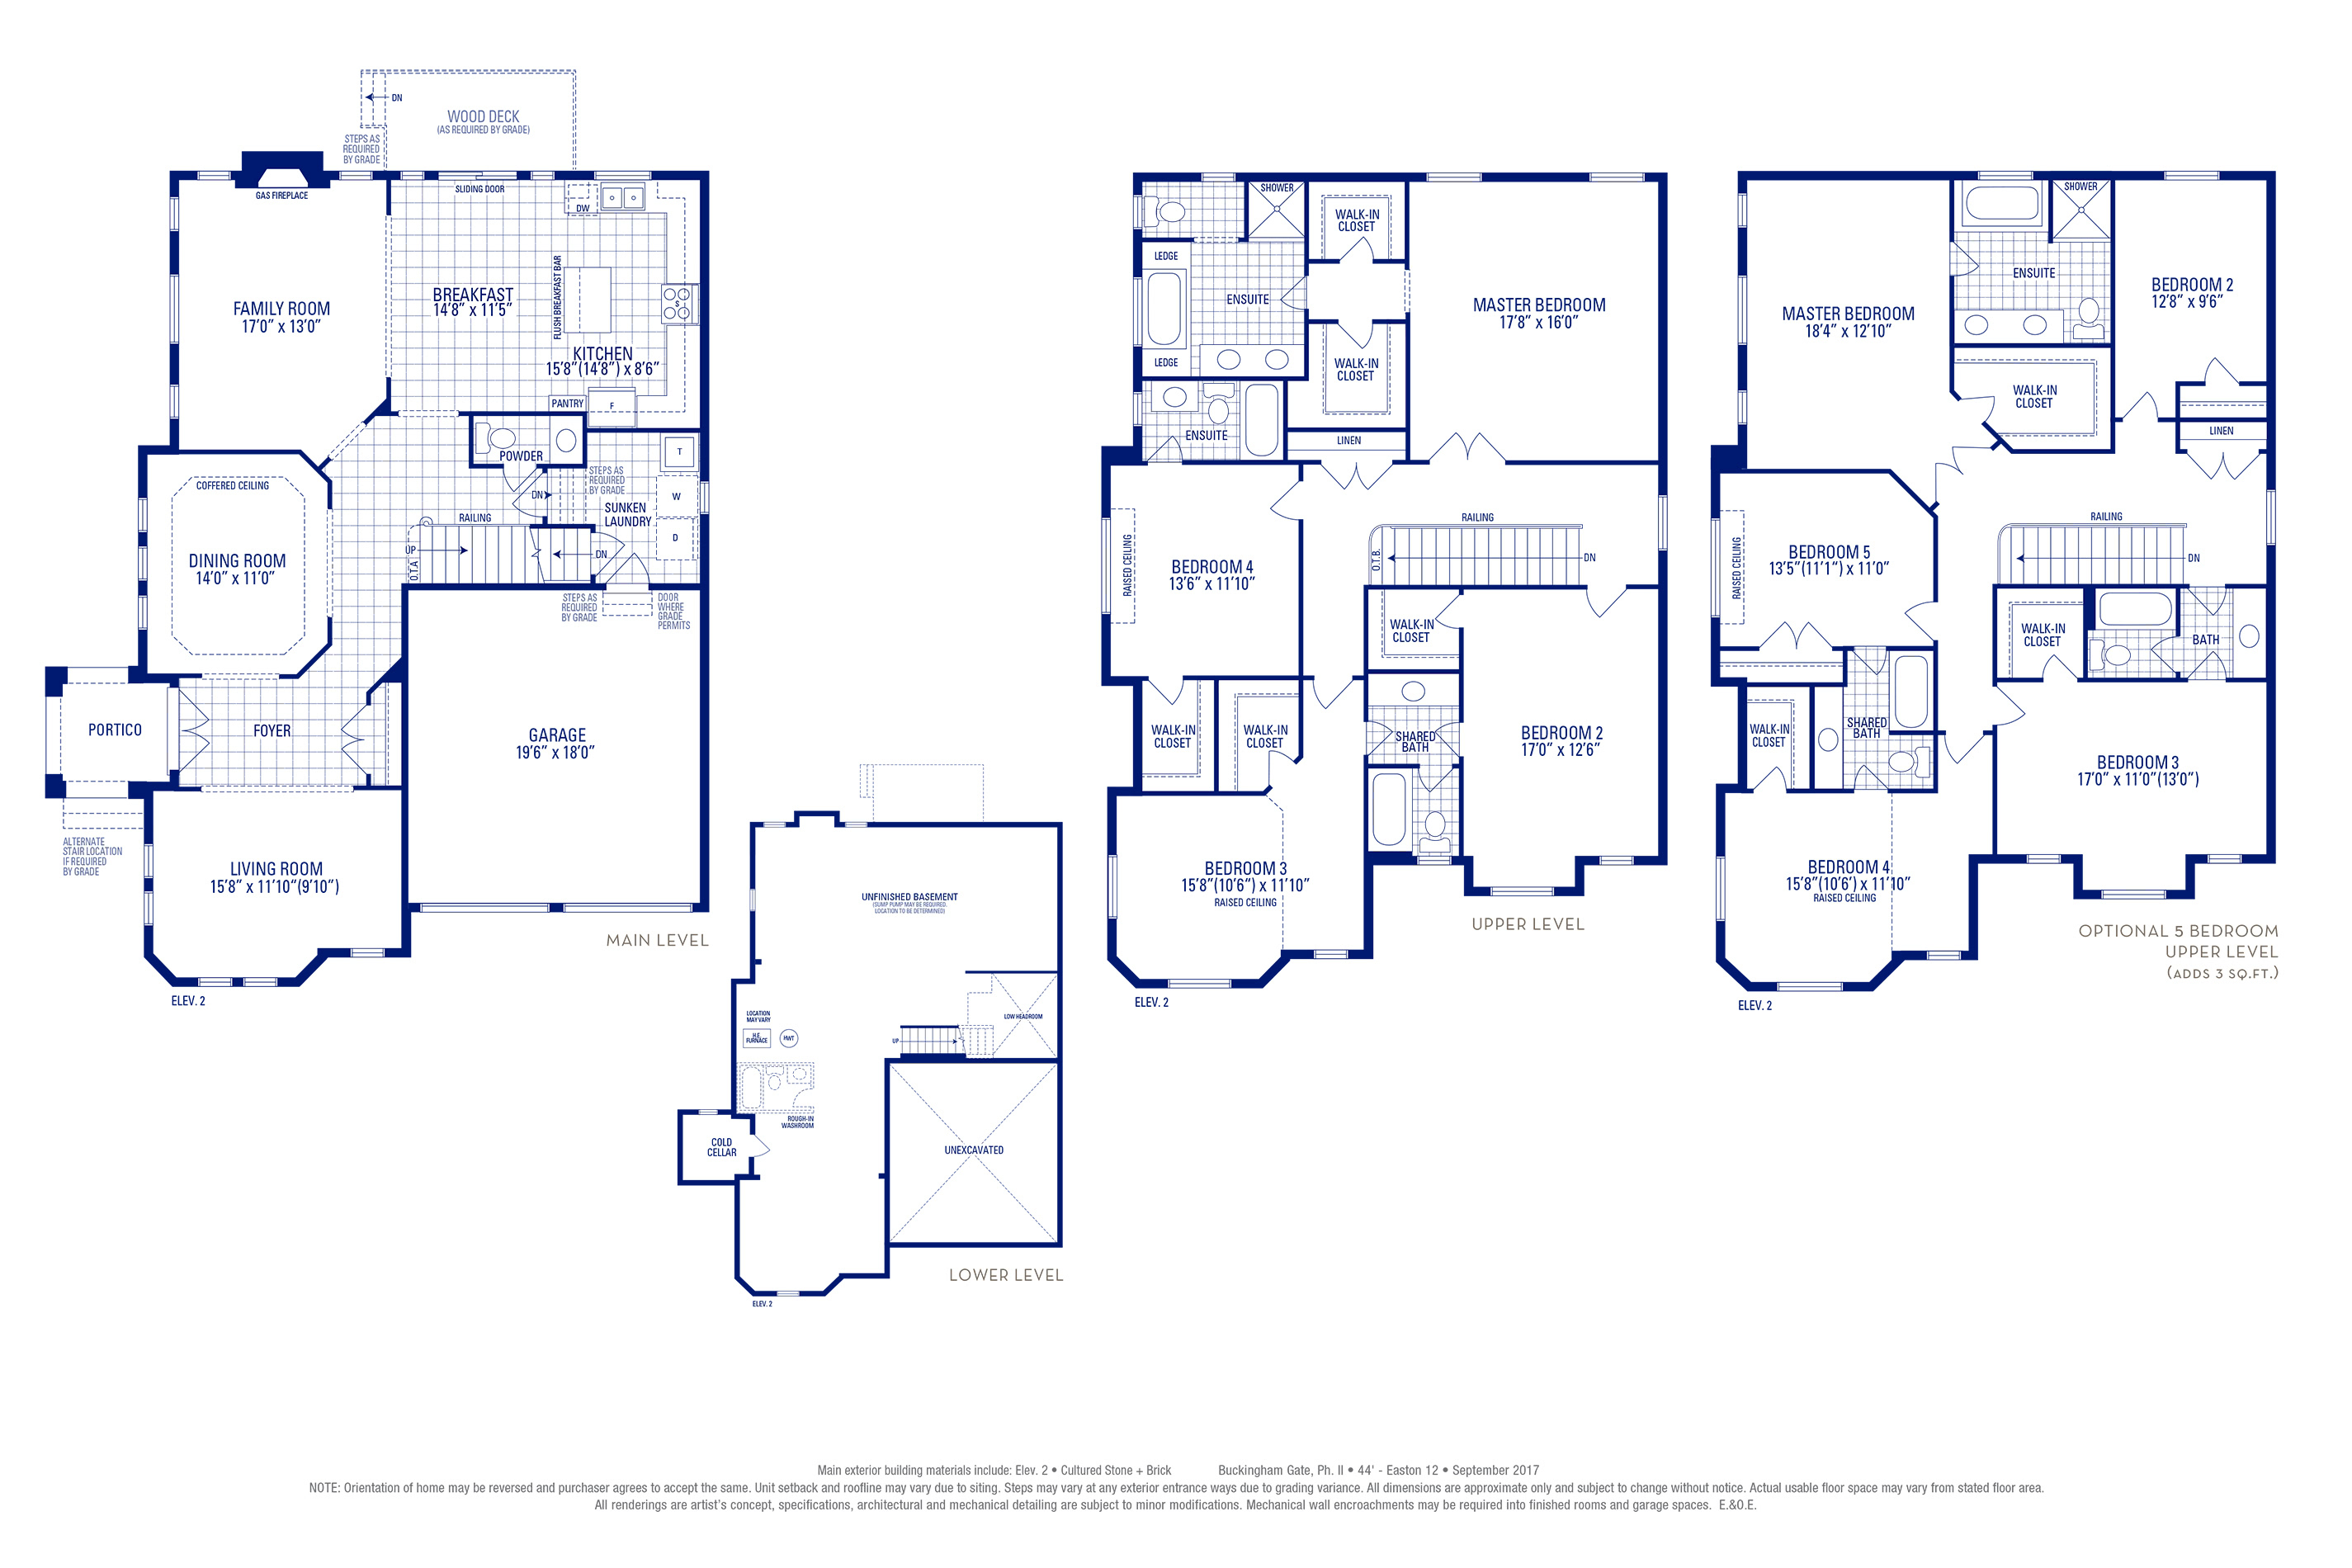 Easton 12 Elev. 2 Floorplan